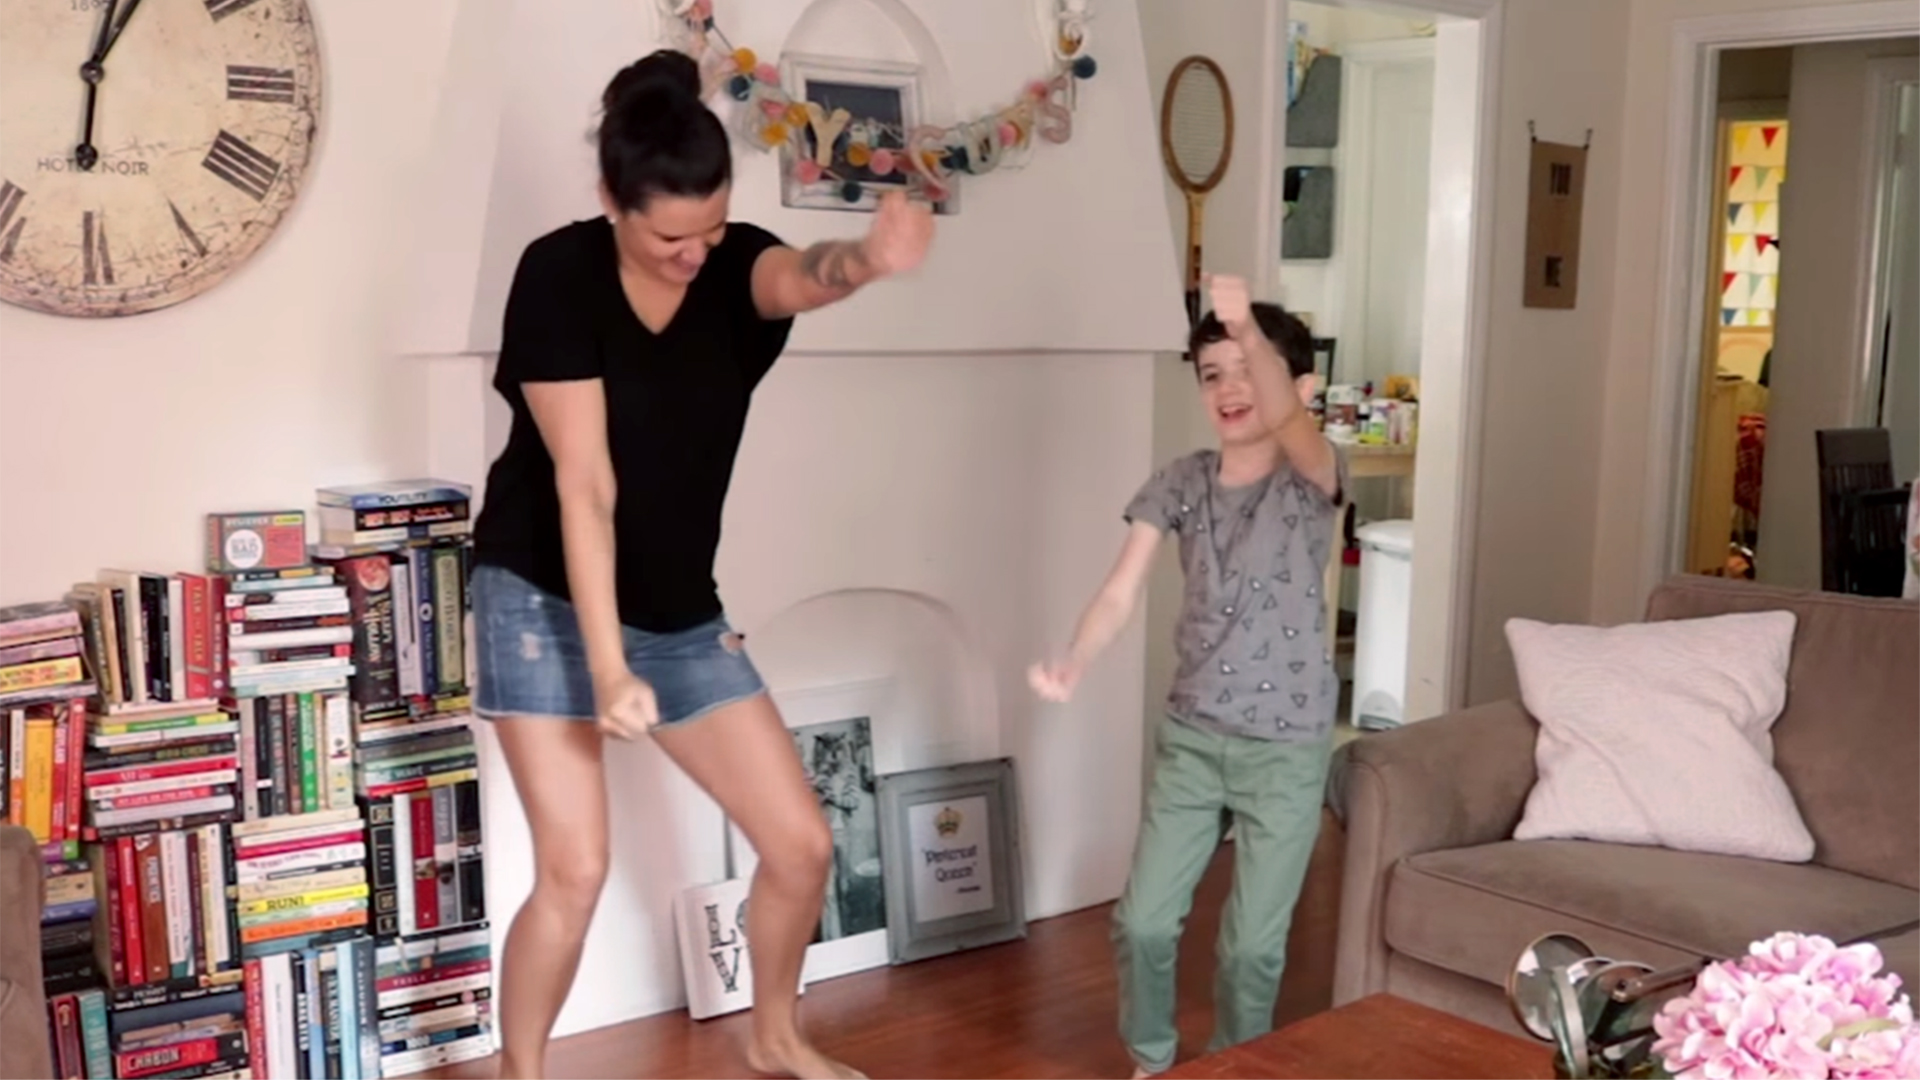 justin timberlake has moms kids dancing in parody video